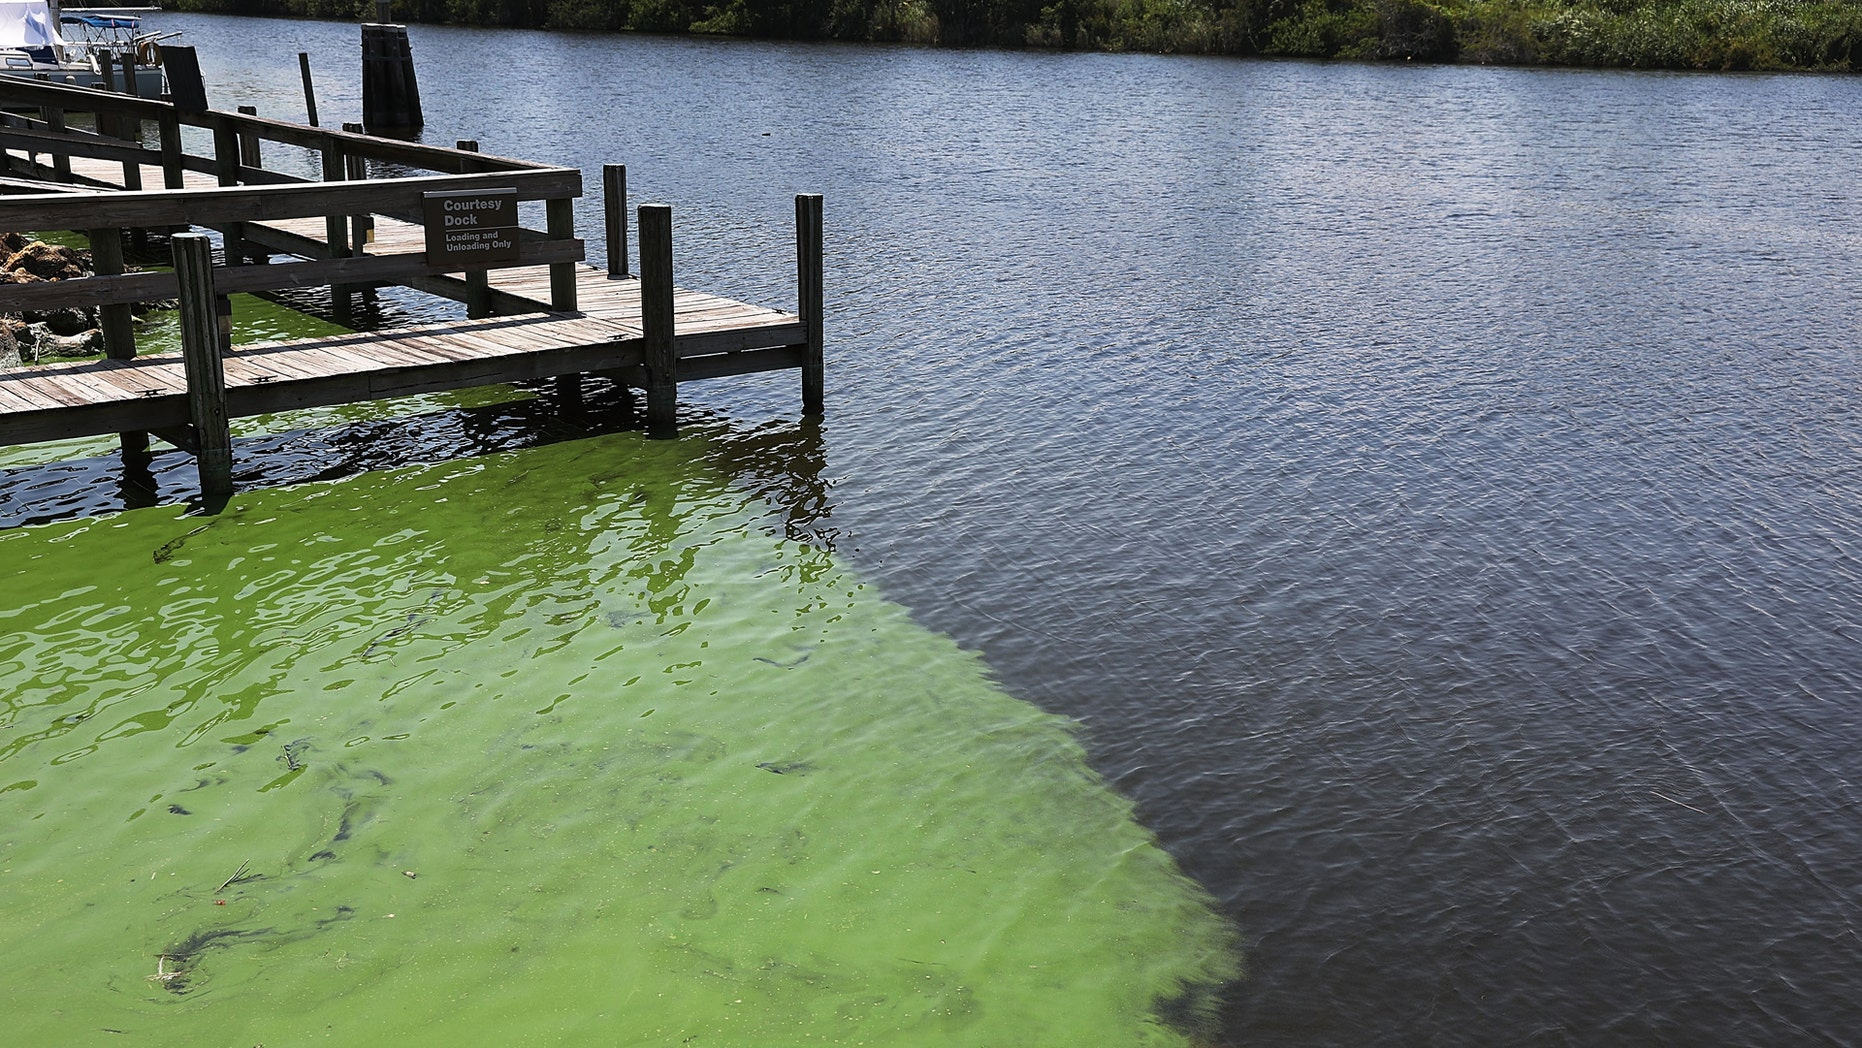 STUART, FL - JULY 13:  Green algae is seen in the St. Lucie River near Phipps Park on July 13, 2018 in Stuart, Florida. Water releases which carry the green algae from Lake Okeechobee resumed Friday morning into the Caloosahatchee River and into the St. Lucie River at Port Mayaca.  (Photo by Joe Raedle/Getty Images)